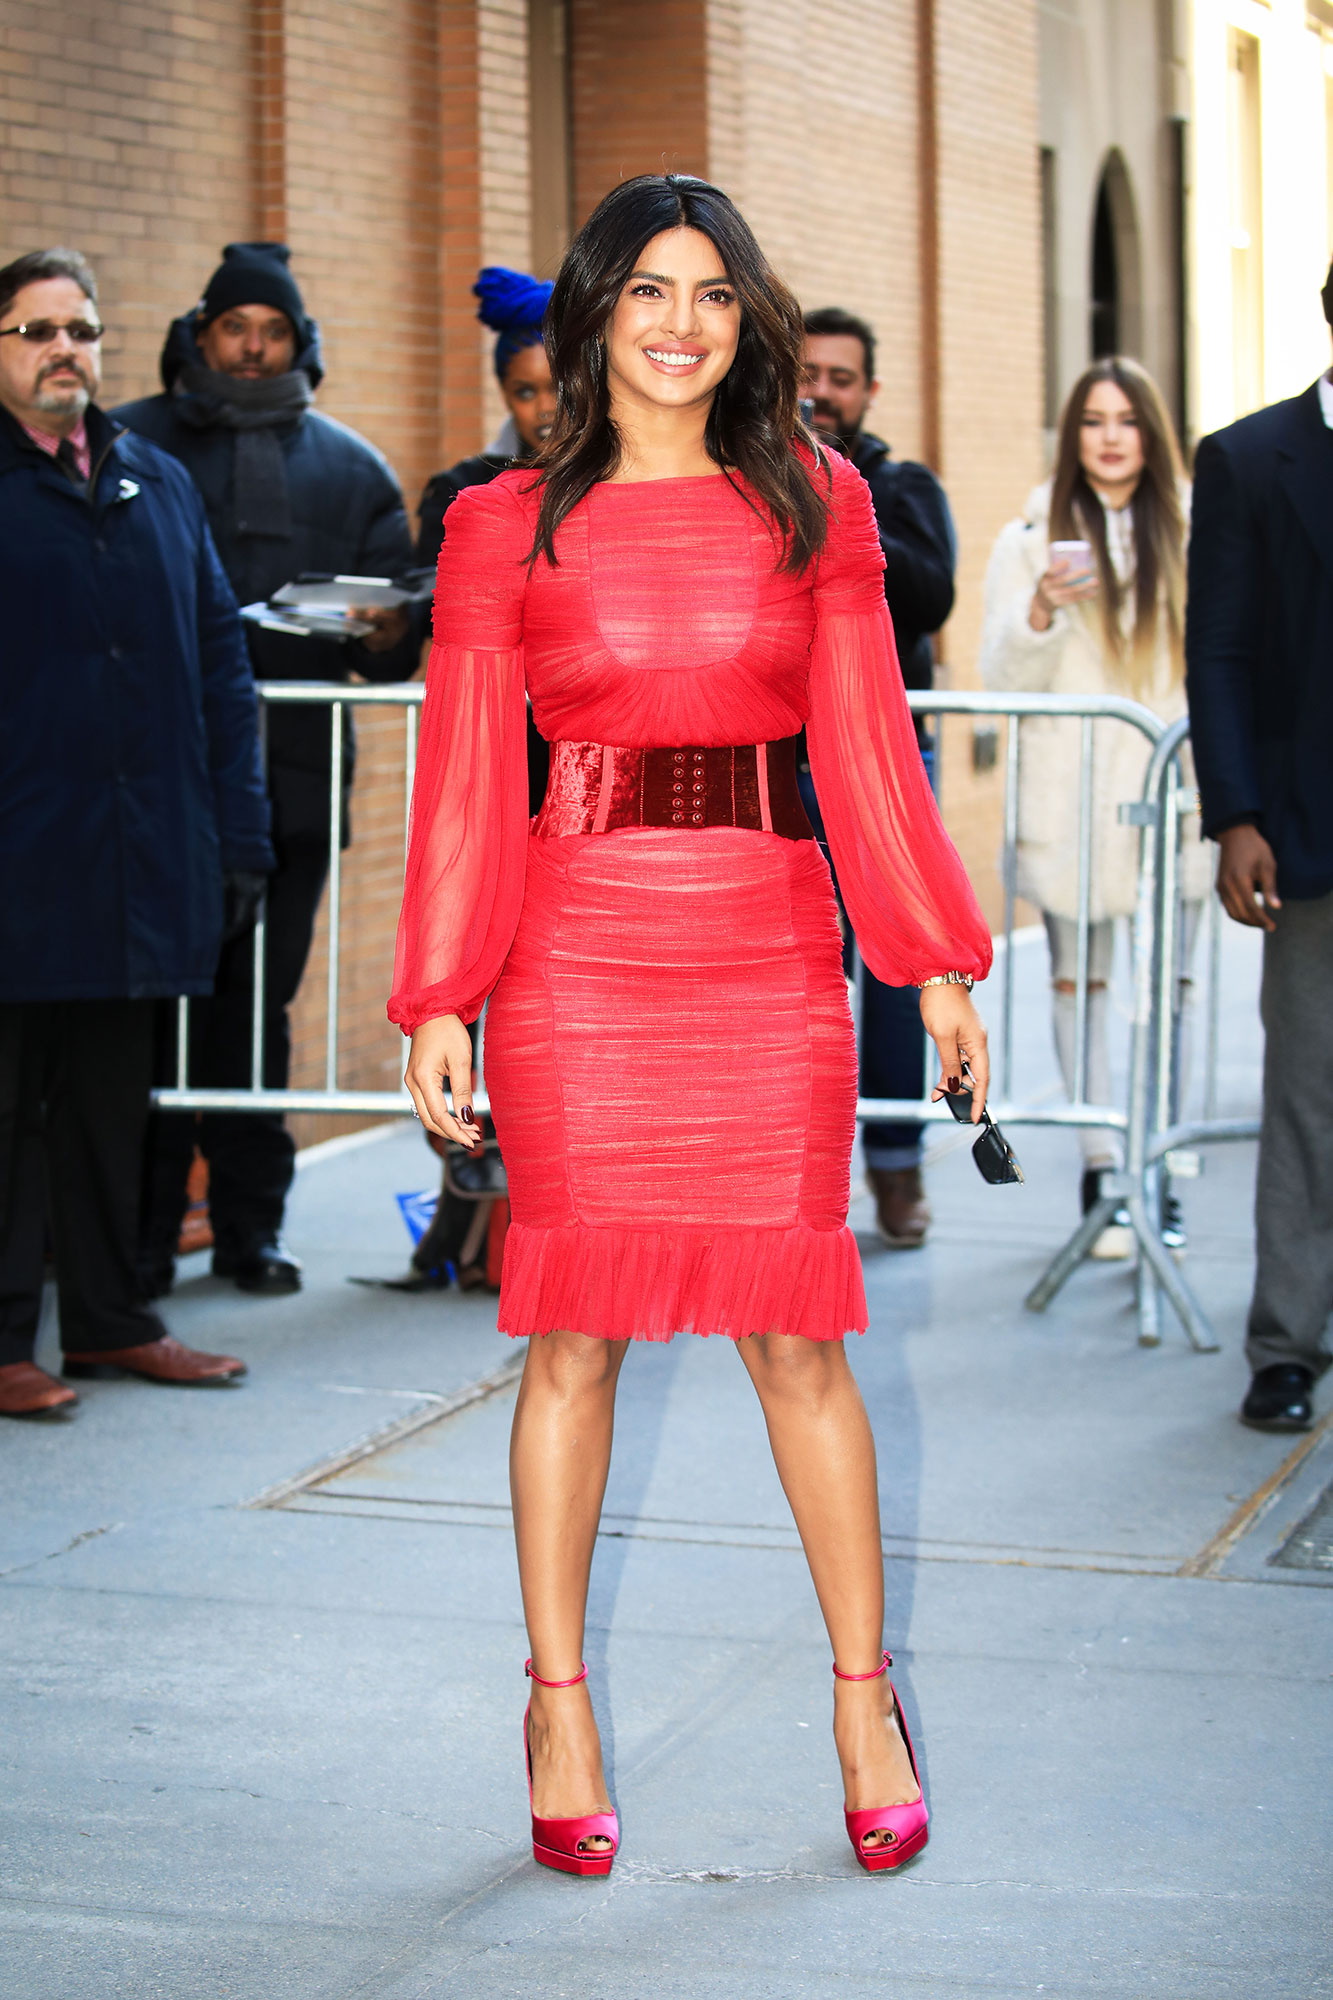 Priyanka Chopra pink red dress new york city - Red hot! The actress rocked a Vintage Tom Ford ruched minidress and Chopard jewels for an appearance on The View .